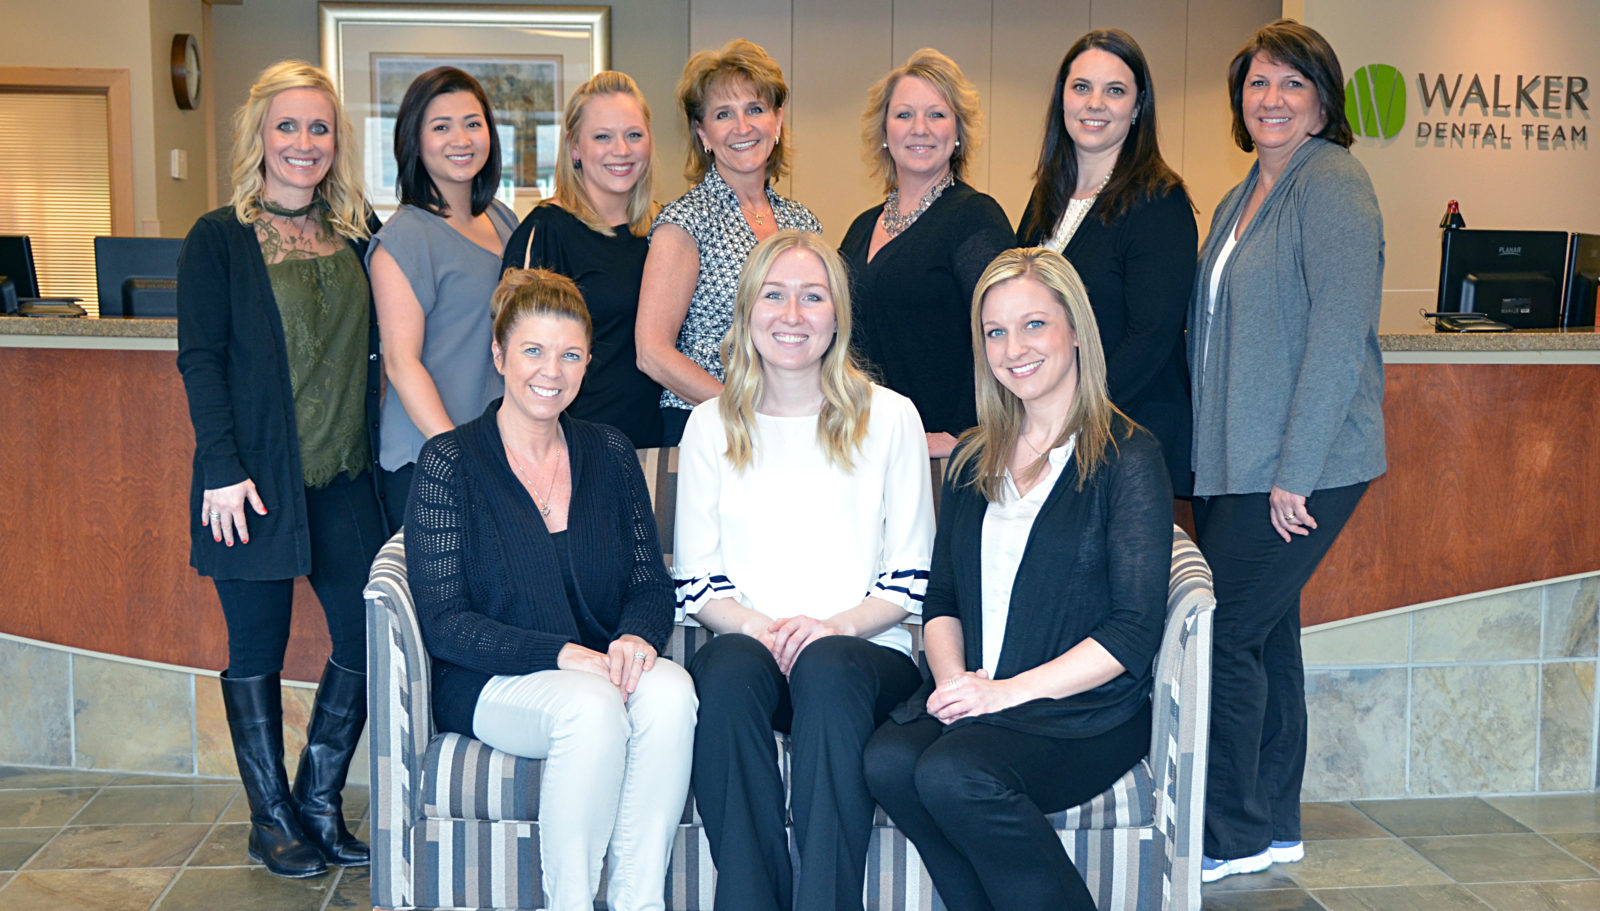 The Walker Dental Team